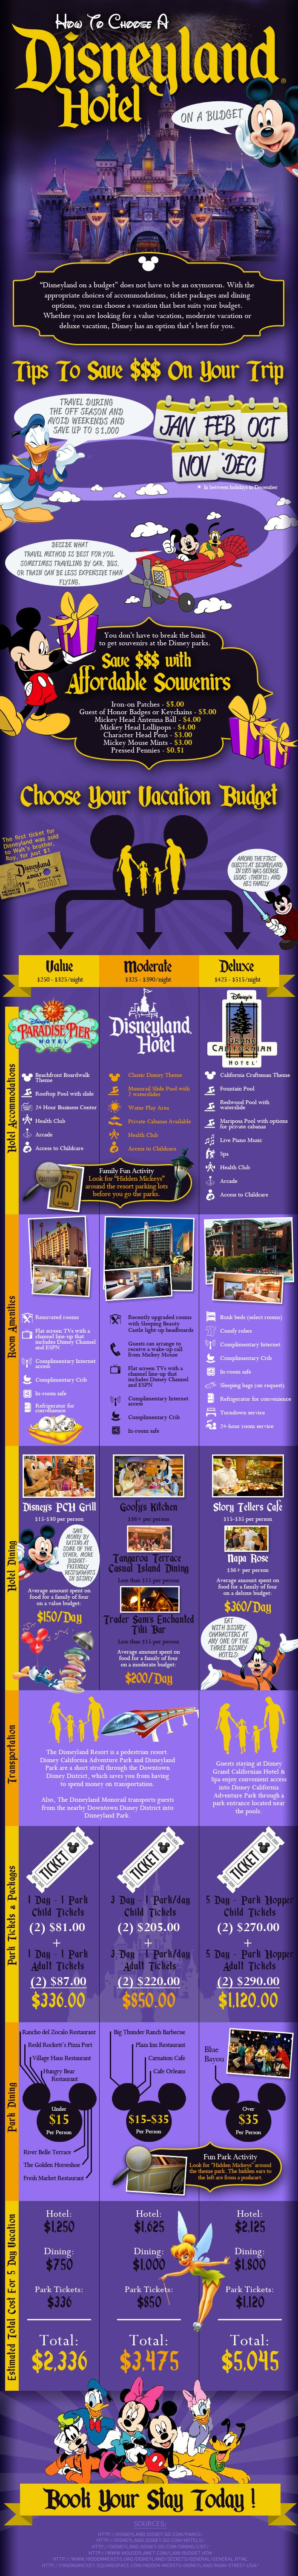 Choosing Disneyland Hotels on a Budget - sorry for the long banner, I normally don't repin these!